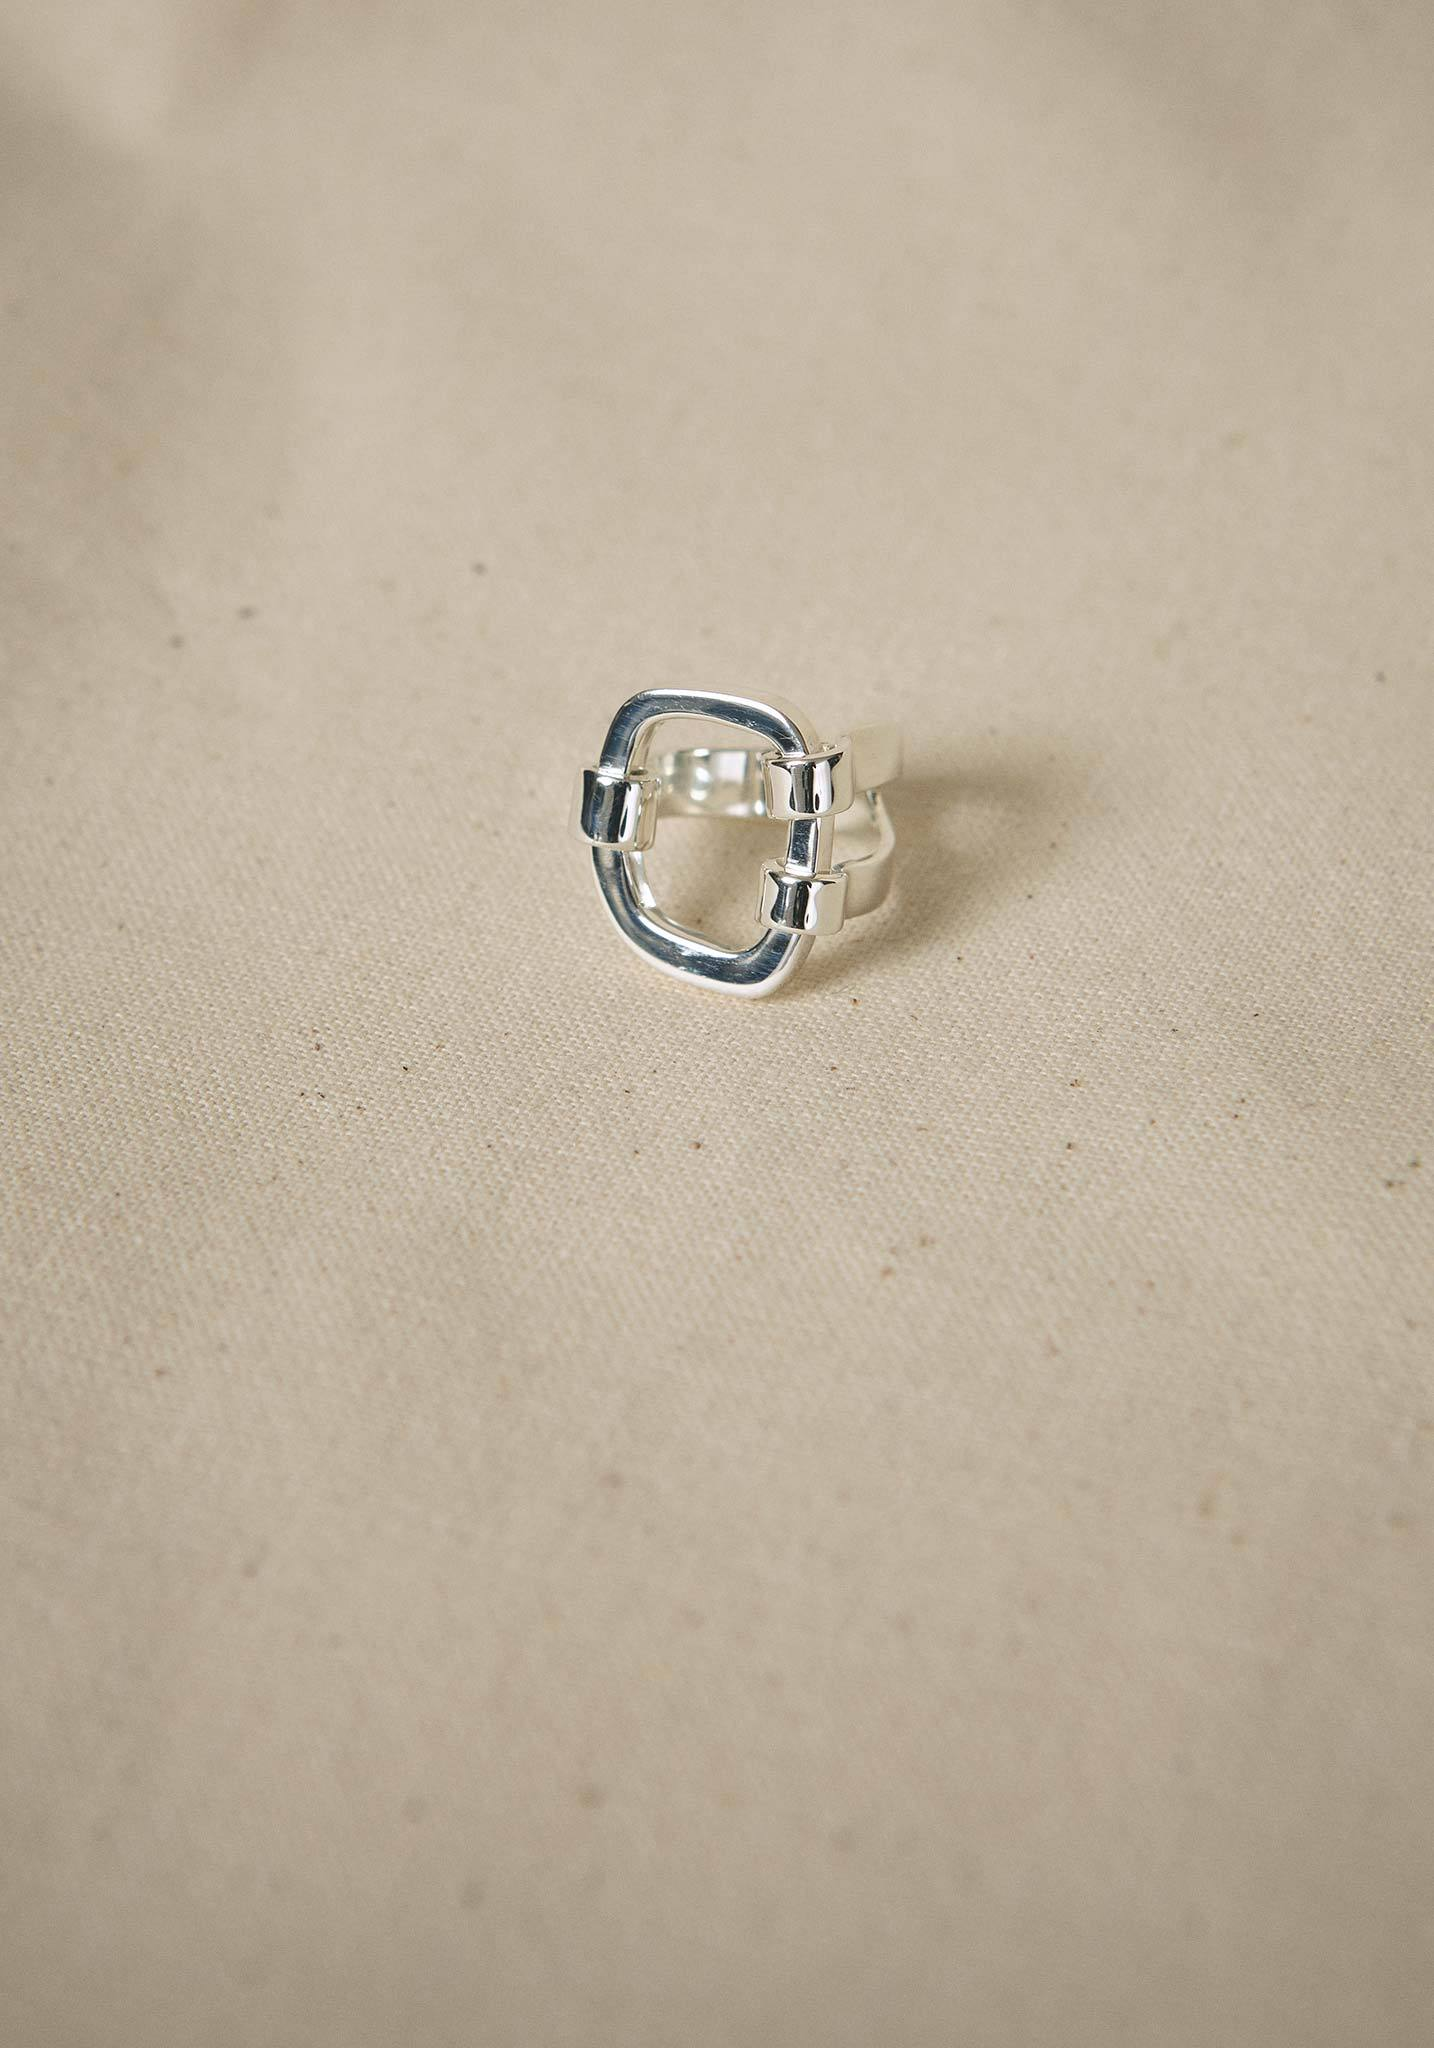 Zohra Rahman, Sterling Silver Hatch Ring